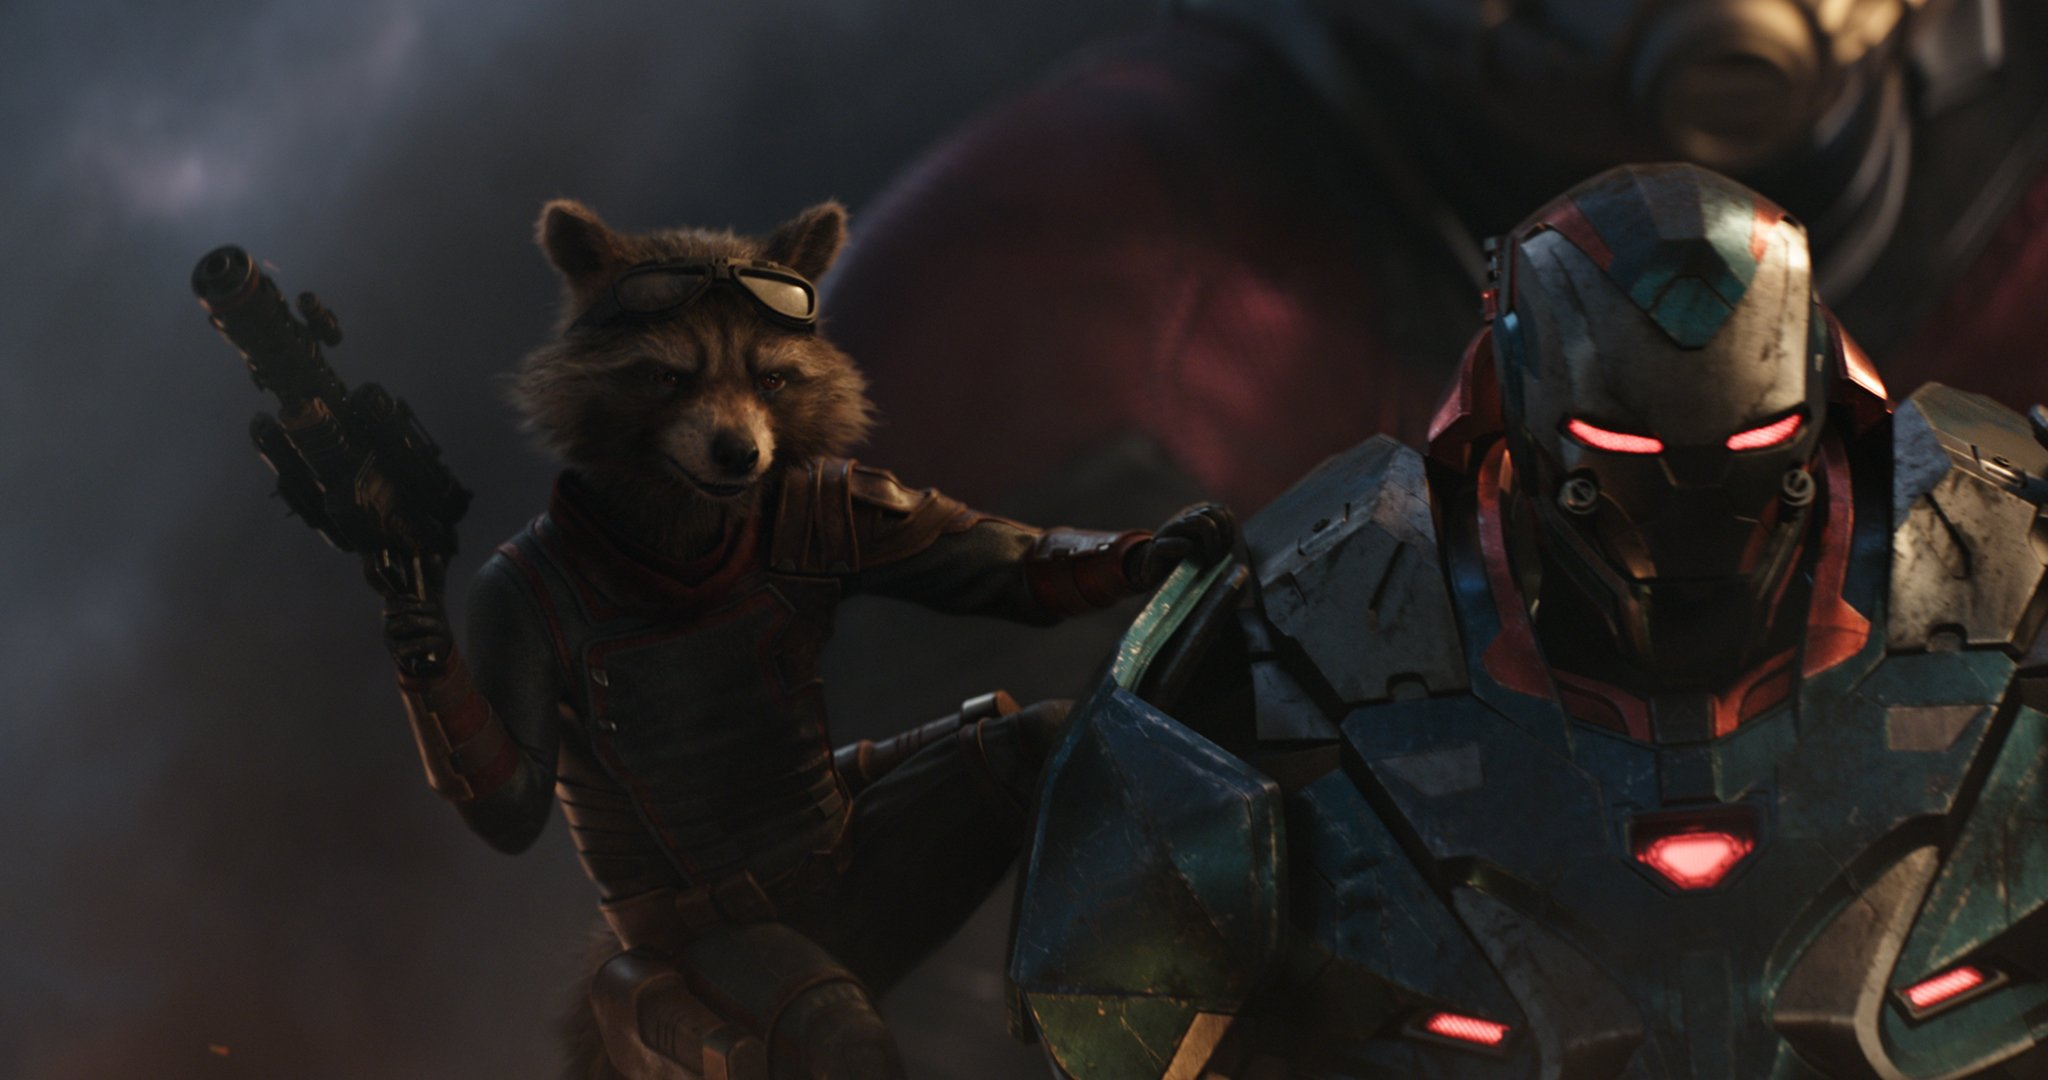 Photo du film Avengers: Endgame avec Rocket et War Machine